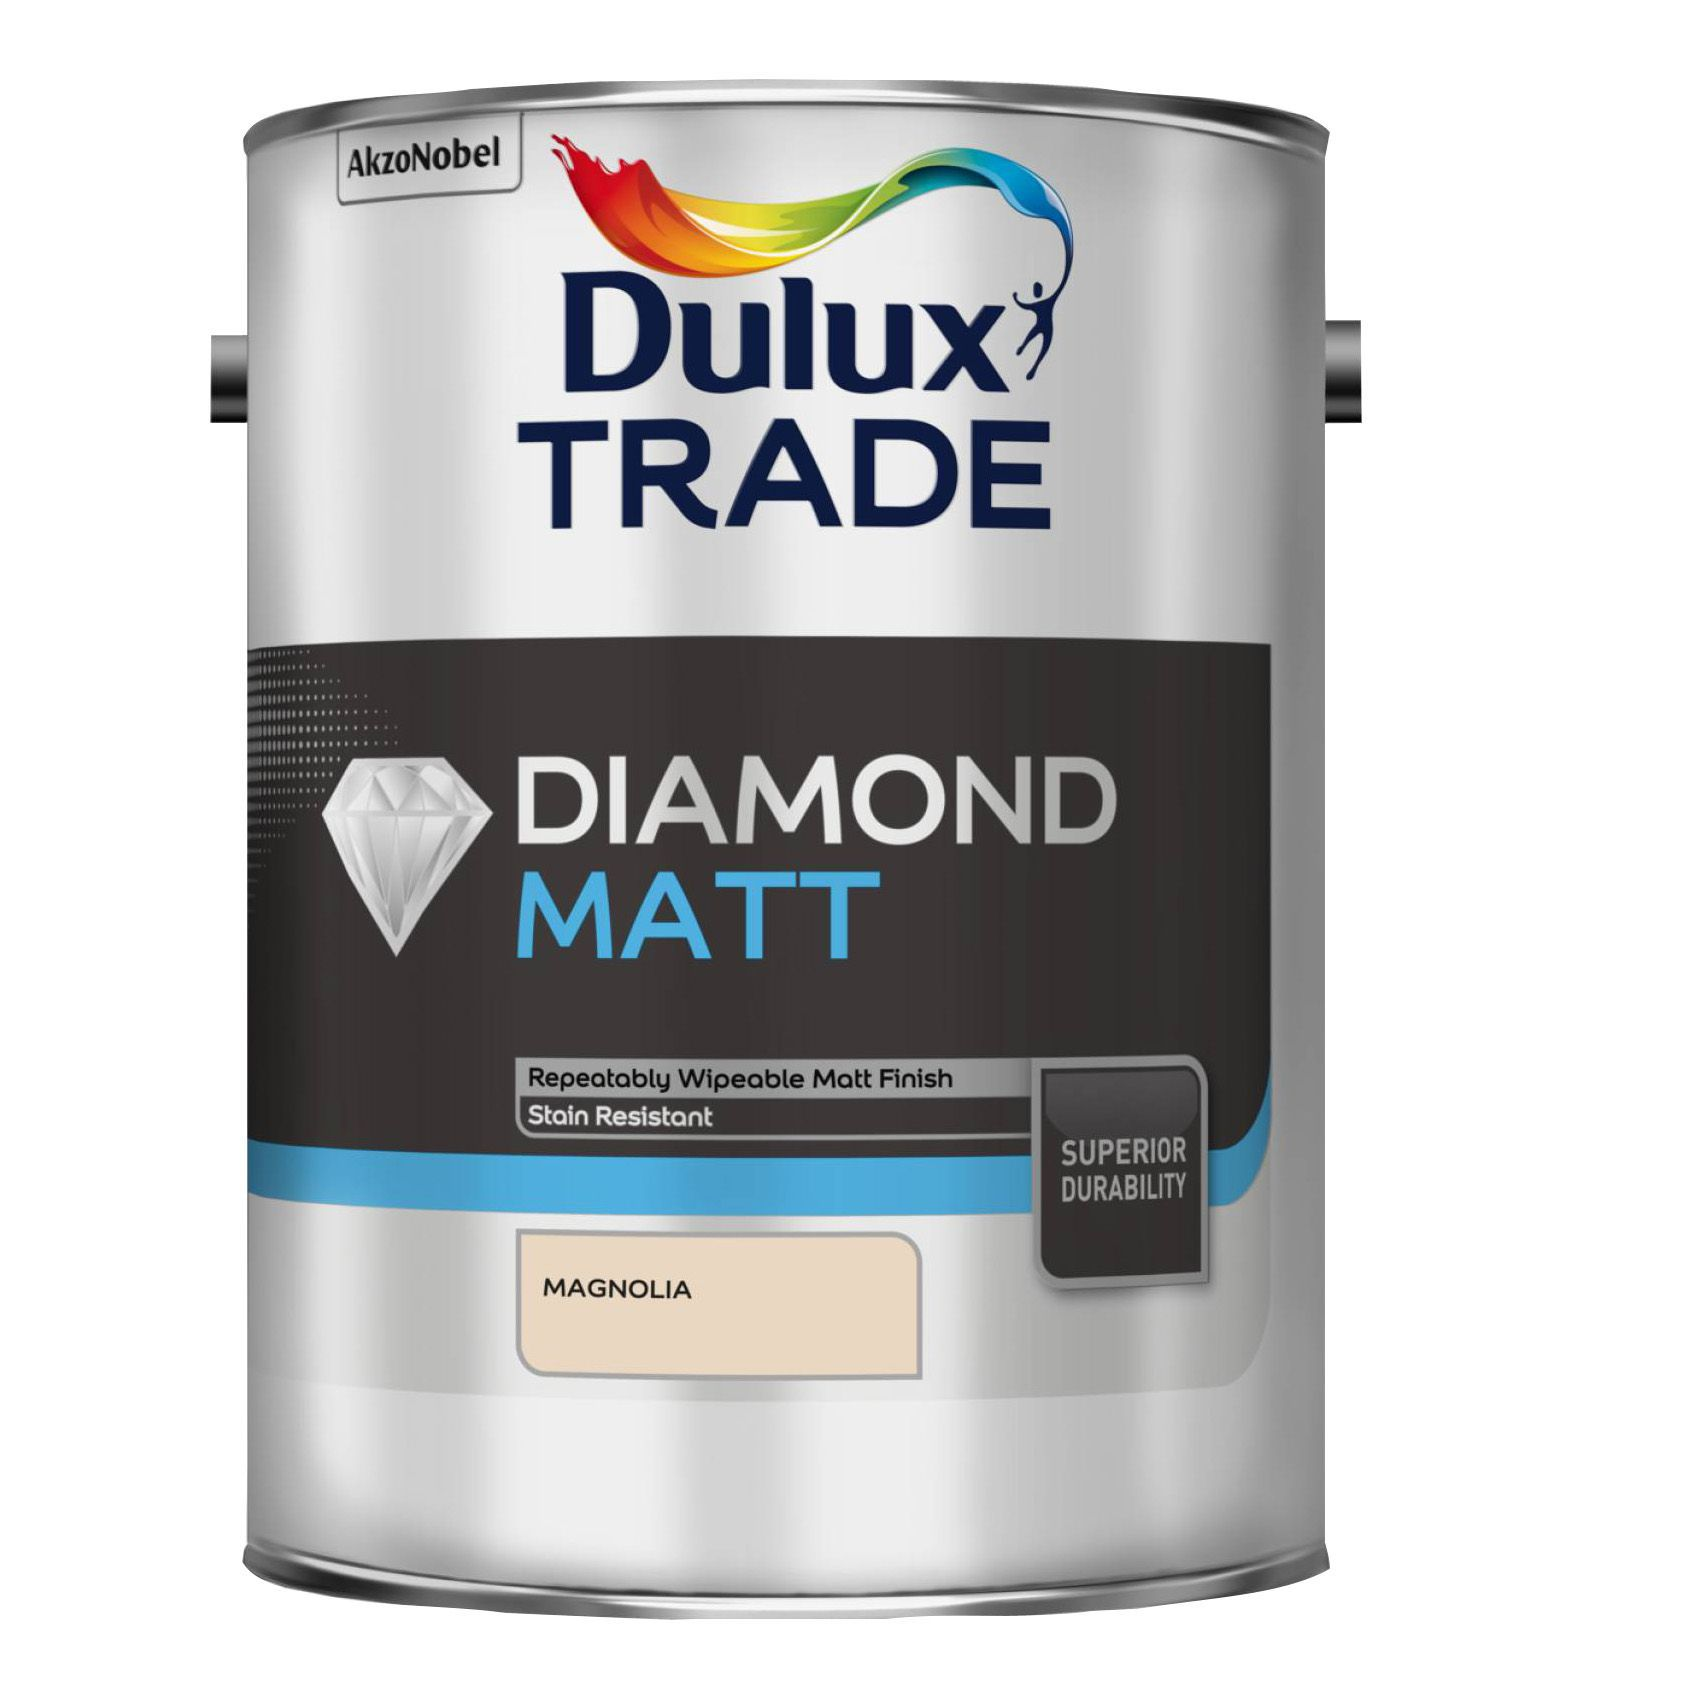 Dulux Trade Diamond Magnolia Matt Emulsion Paint 5l